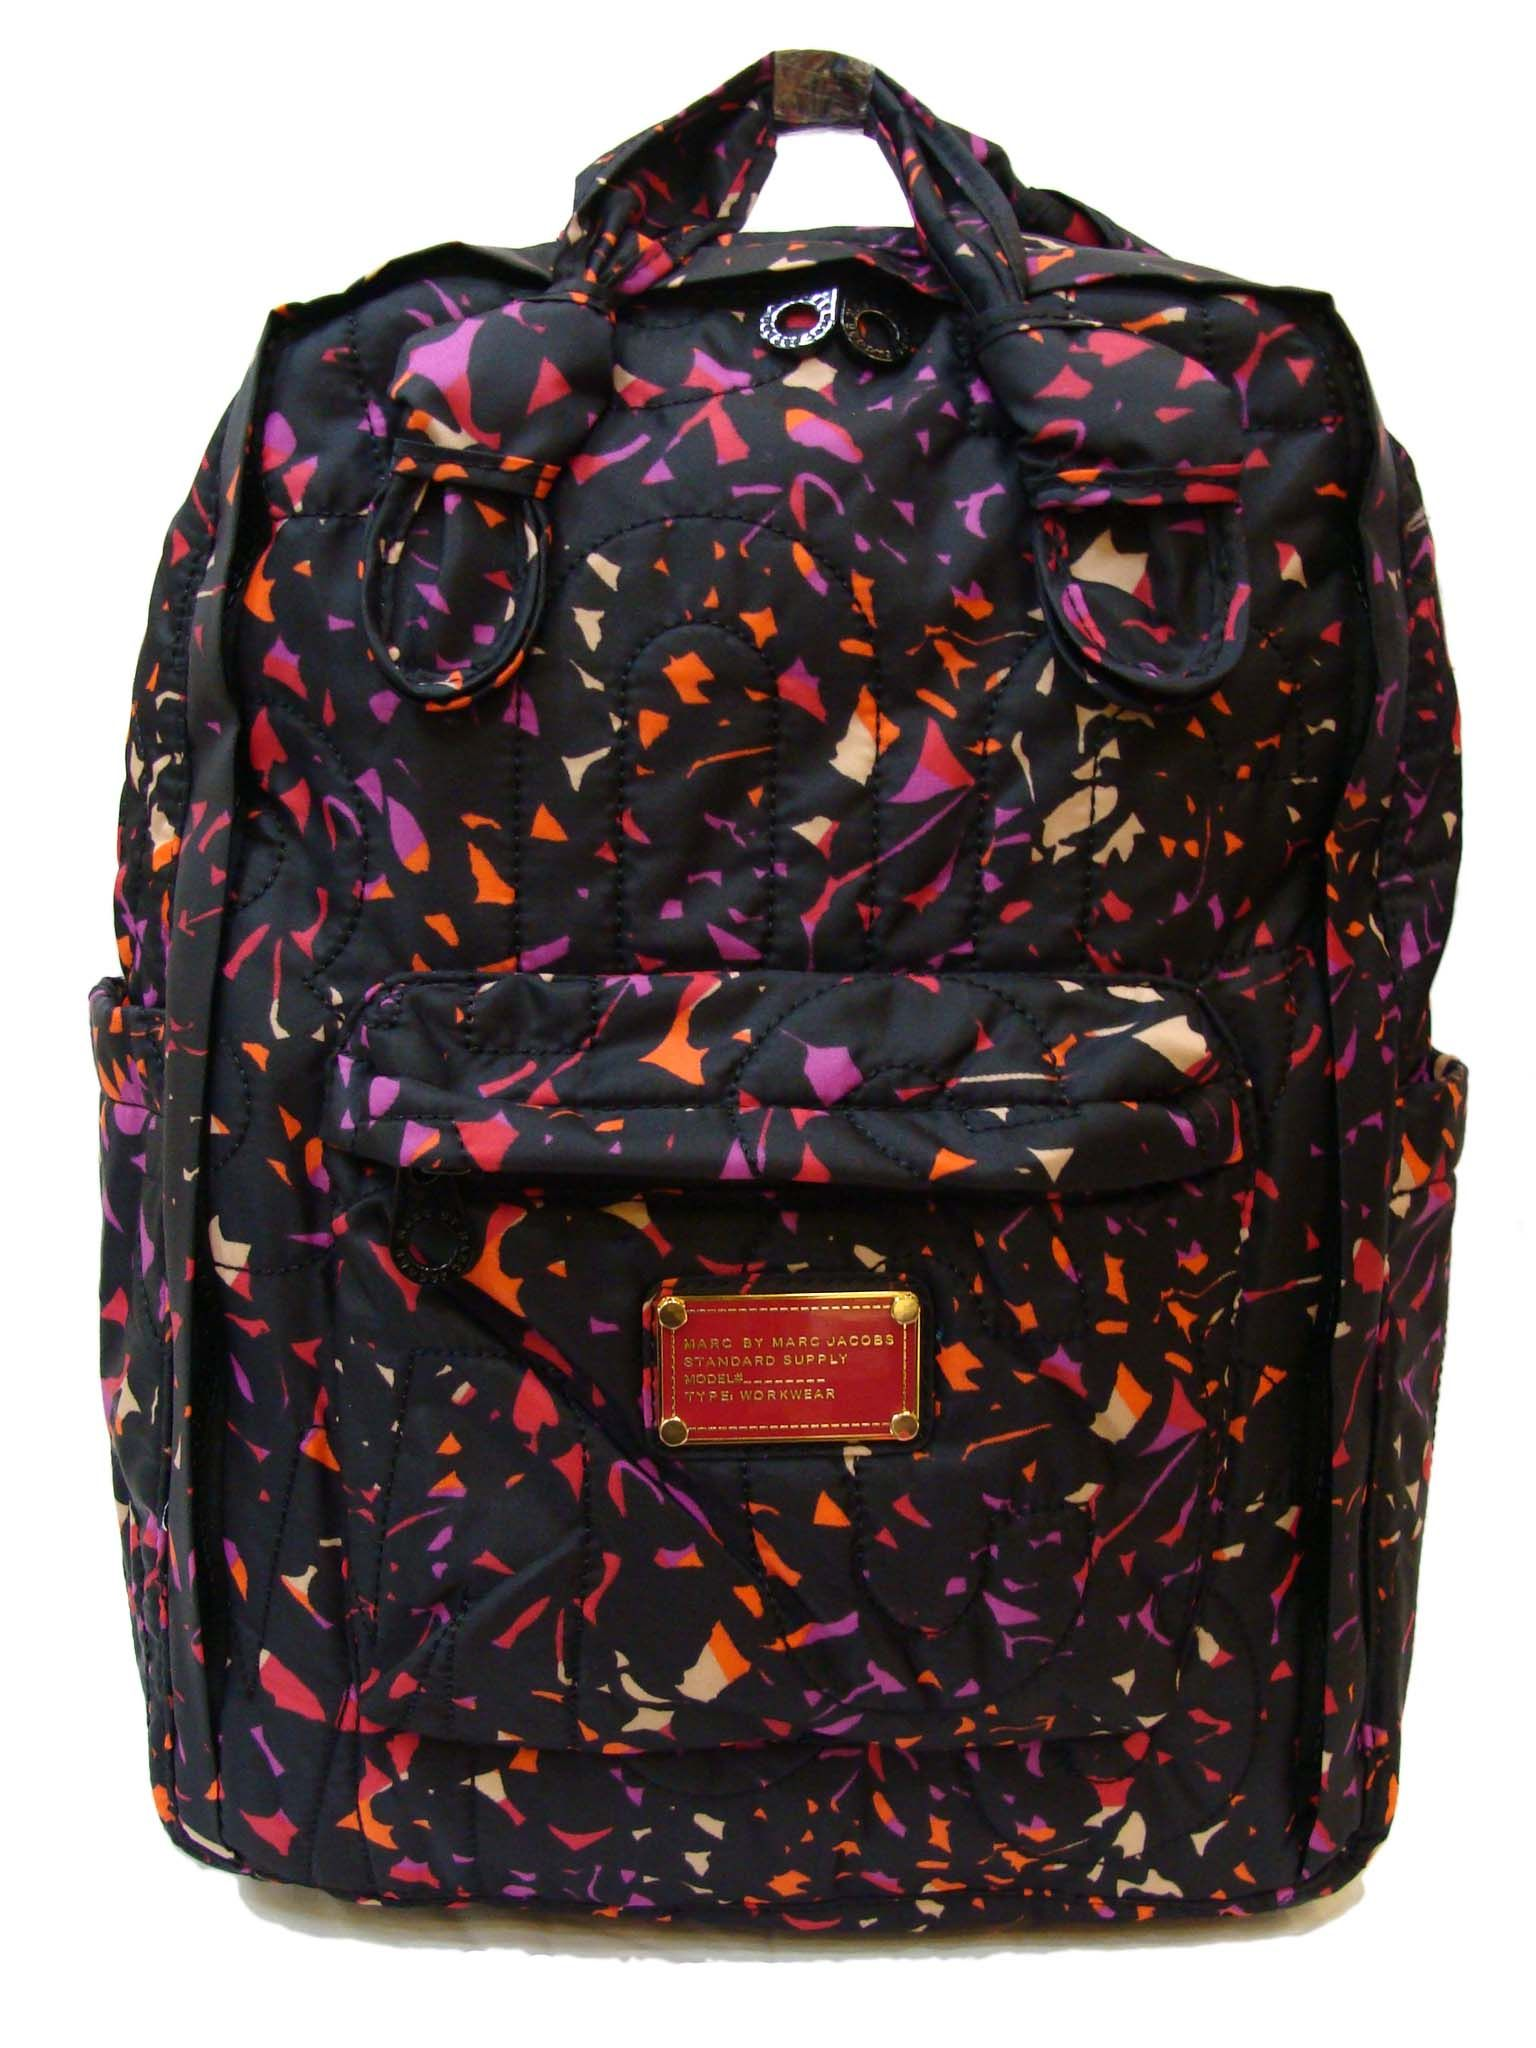 214f0ce88a70 Pretty Nylon Black Multi Knapsack Backpack - MARC JACOBS